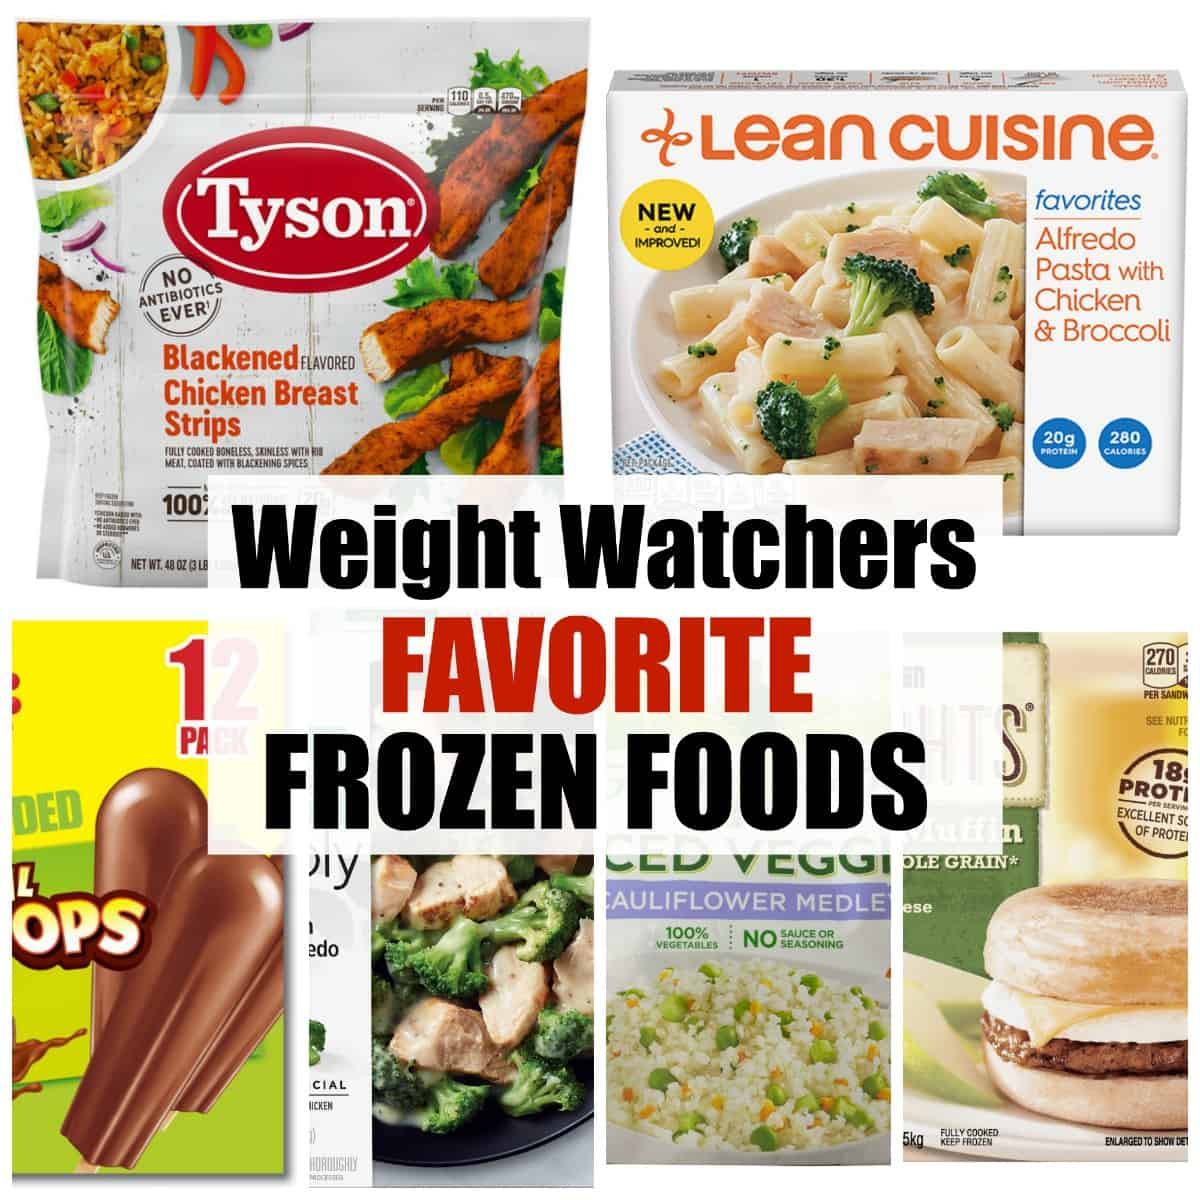 Collage of favorite frozen foods including Tyson blackened chicken breast strips and lean cuisine alfredo pasta with chicken